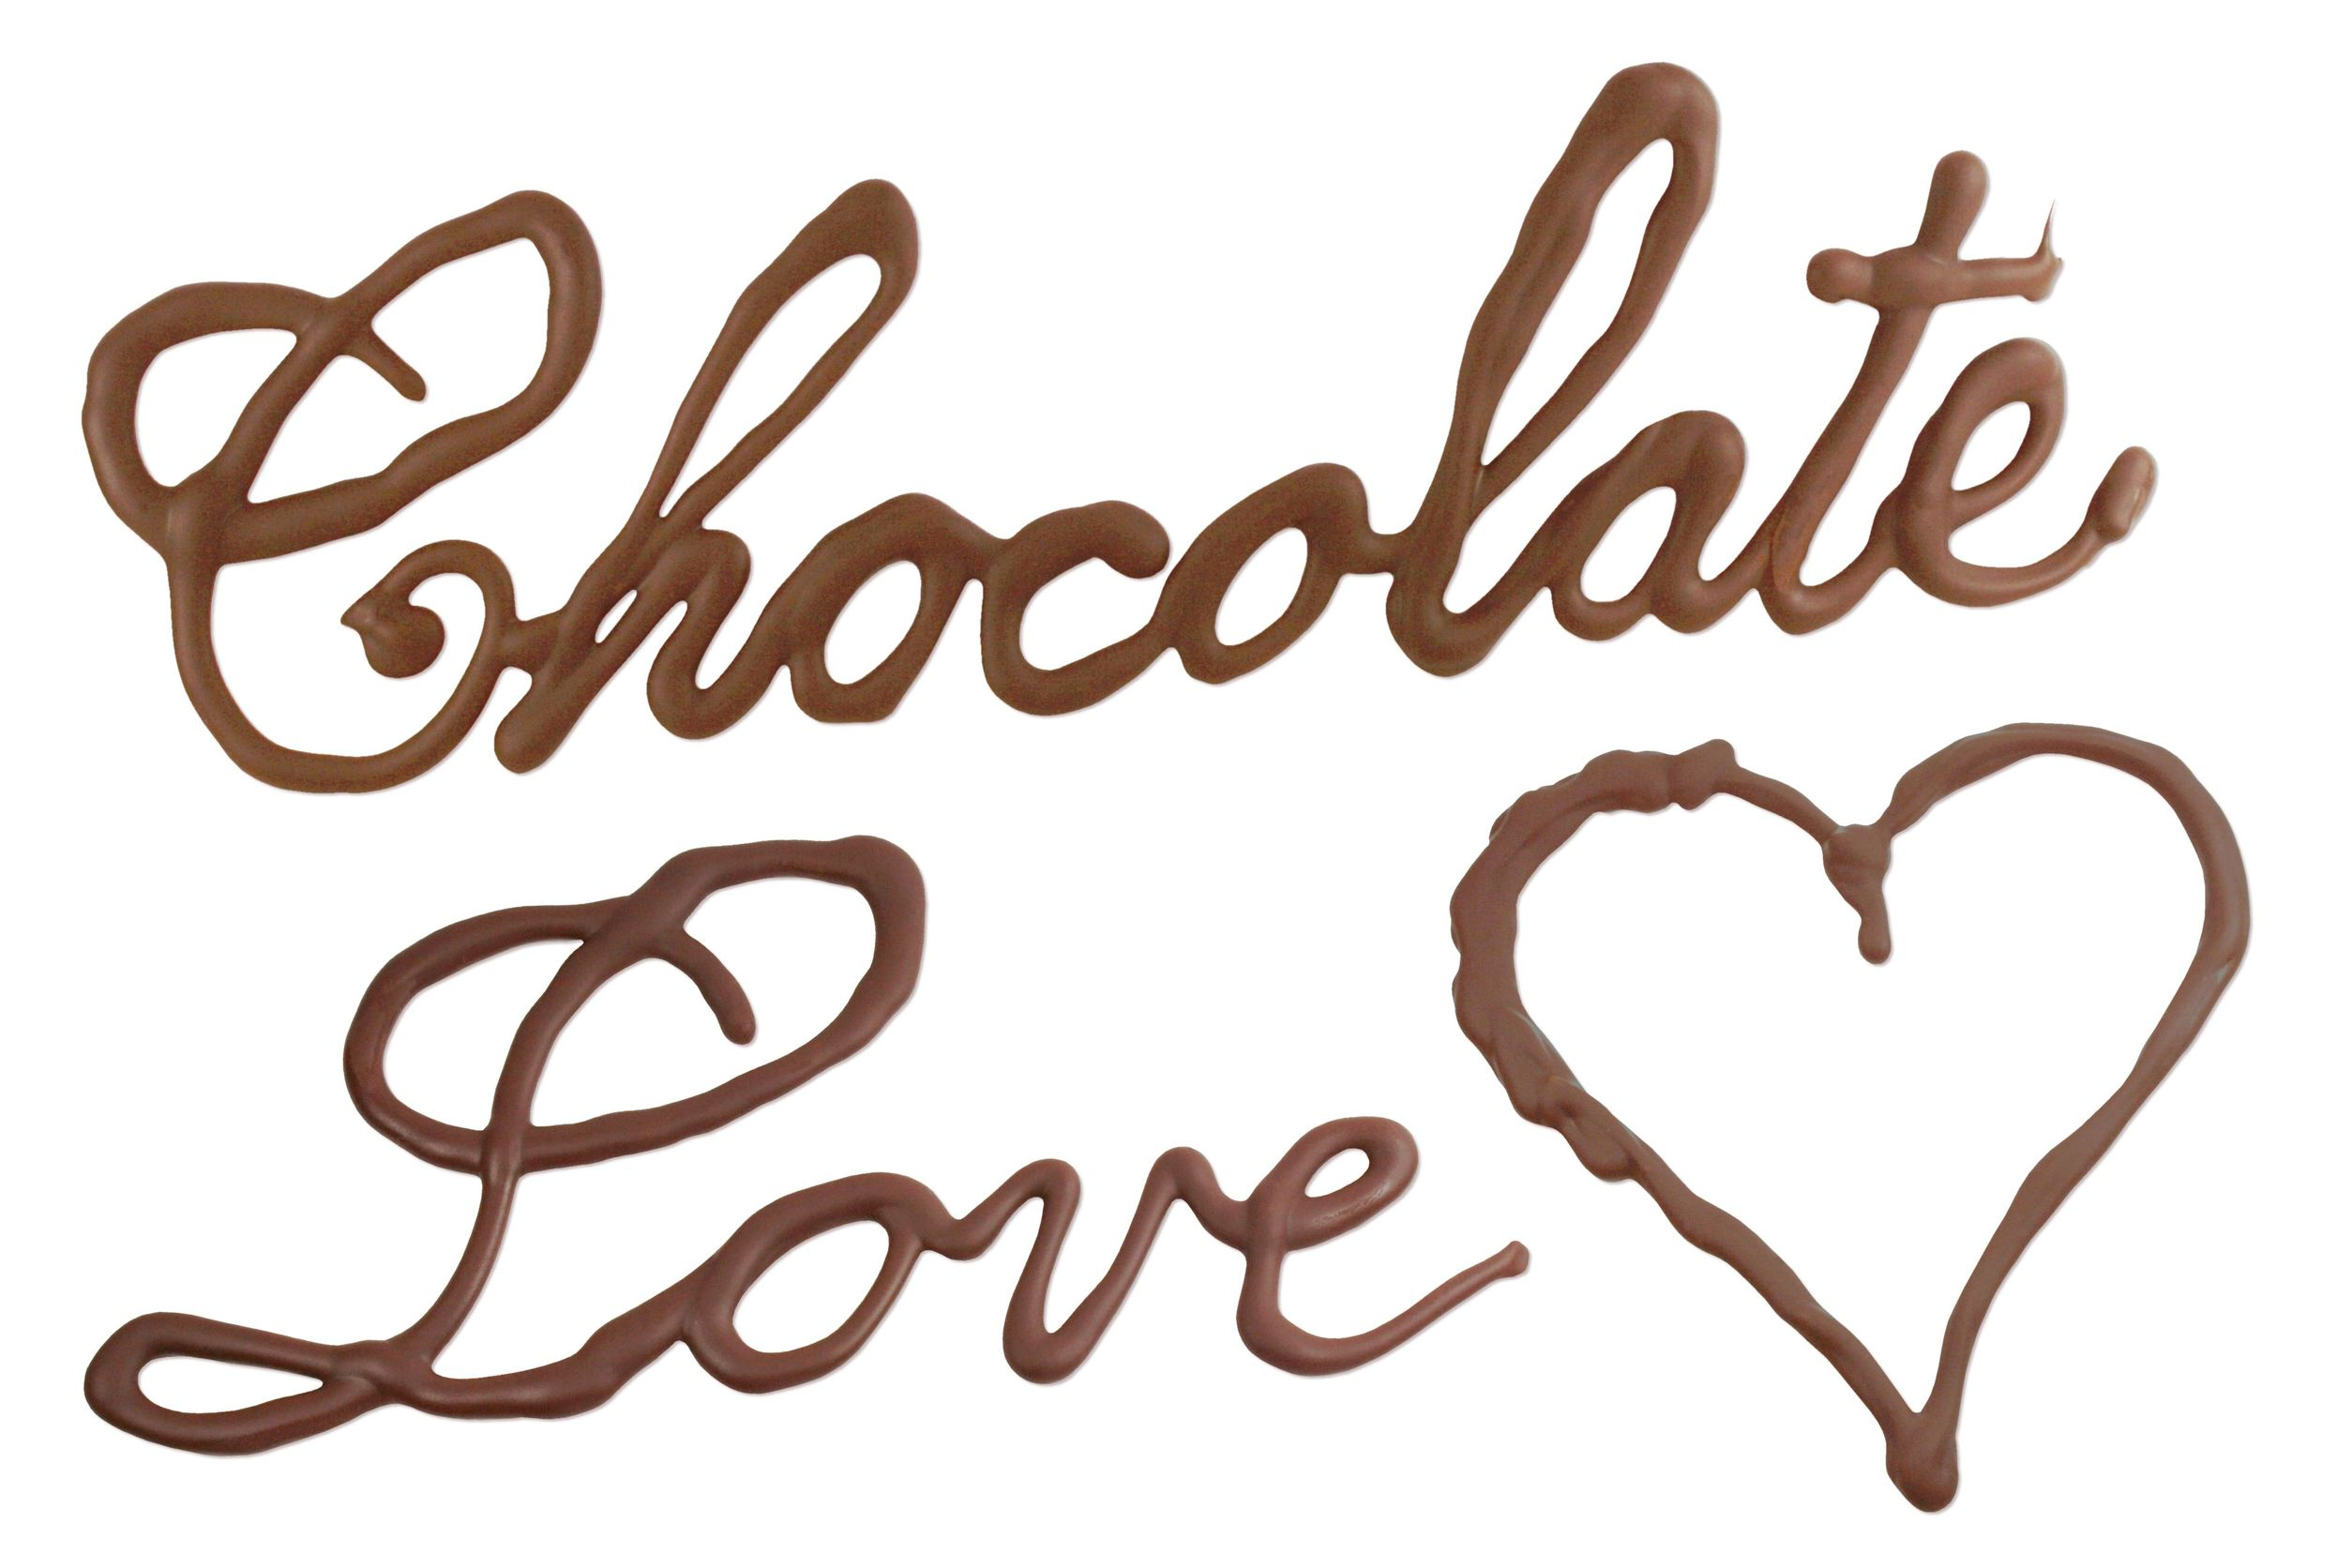 Chocolate - The Love Connection